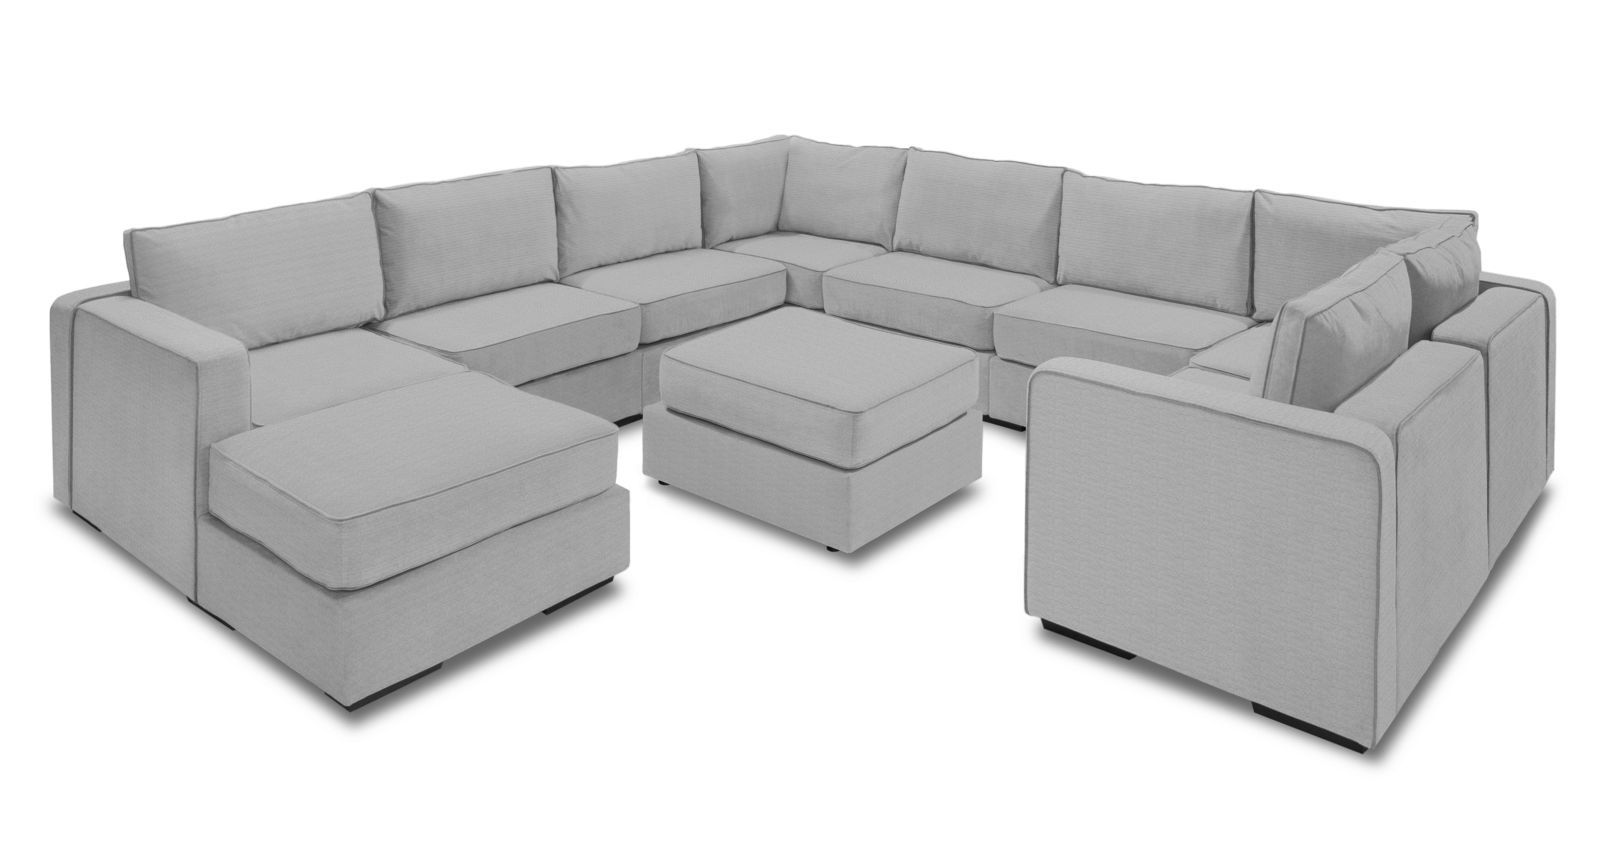 Wrap Around Modular Sectional Couch